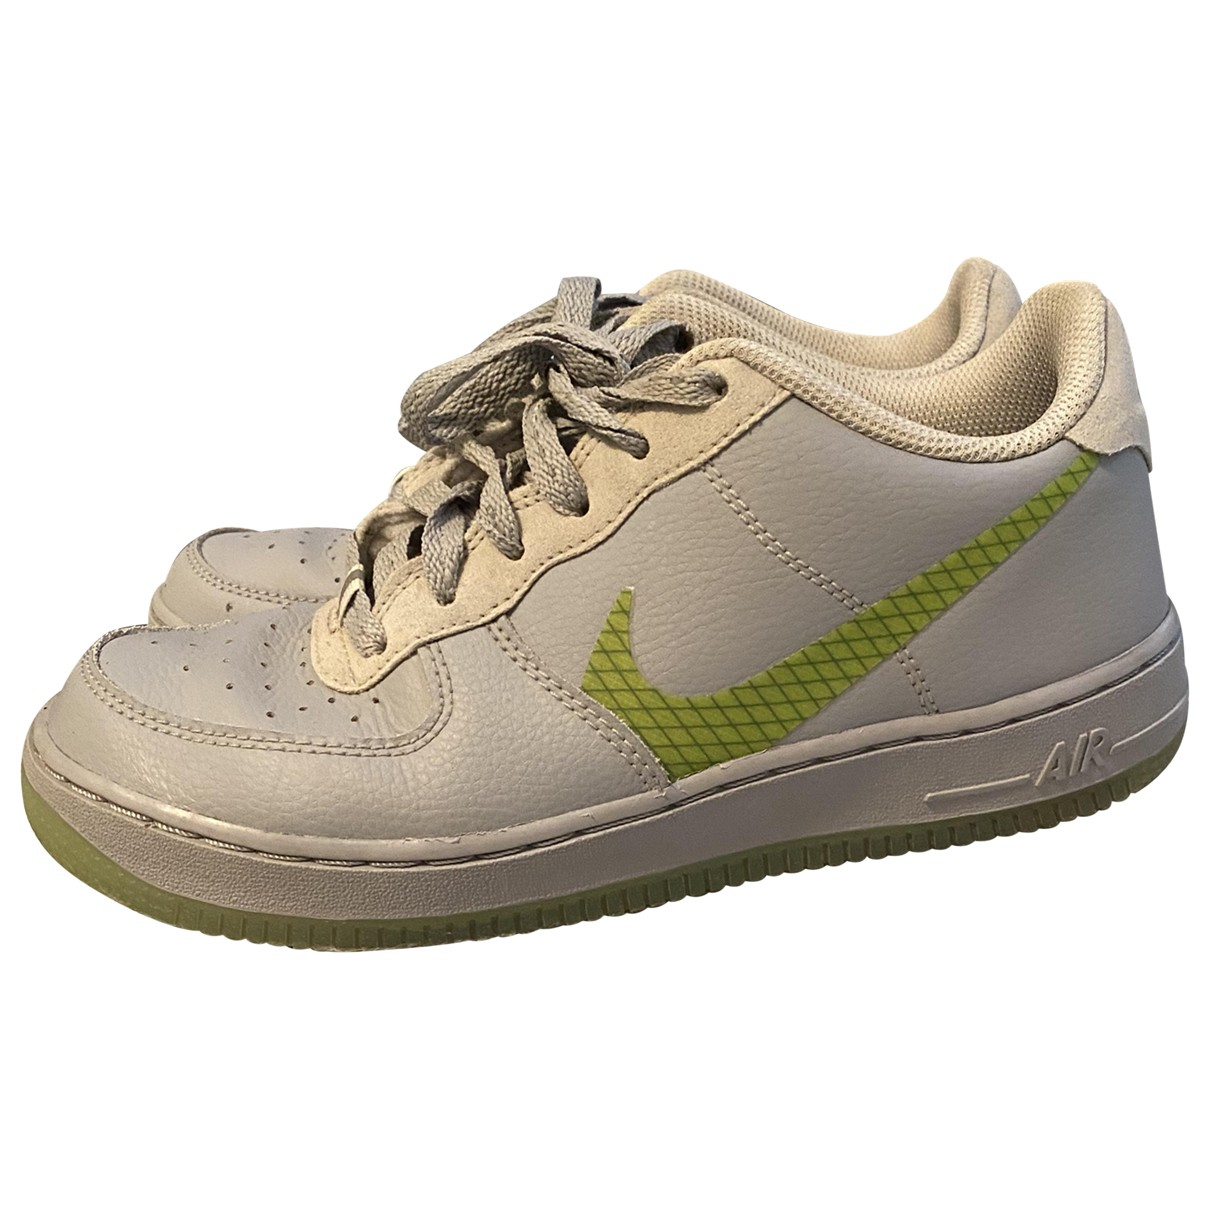 Nike Air Force 1 Grey Leather Trainers for Women 37.5 EU